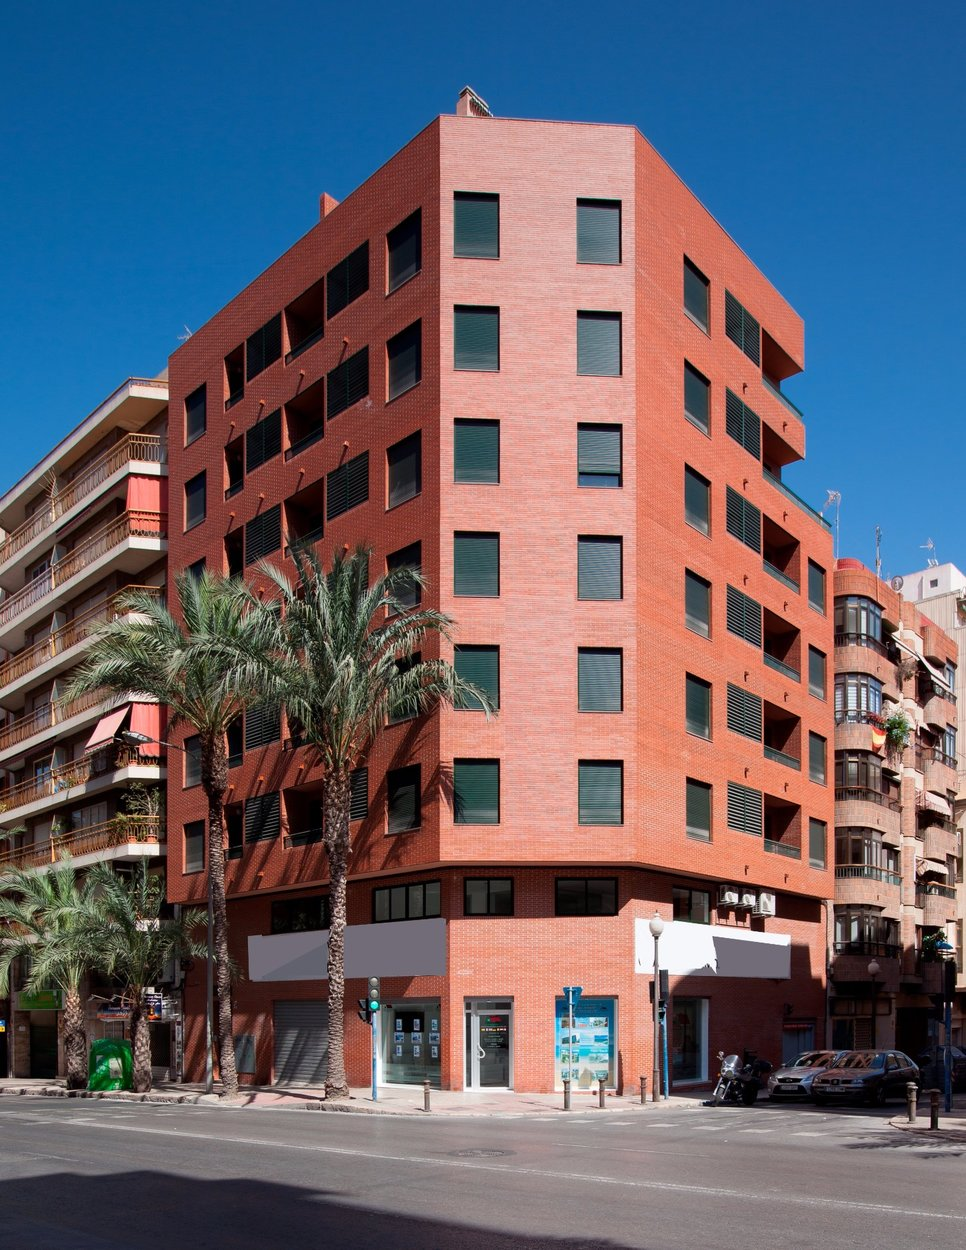 Appartement en vente à Alicante Centre